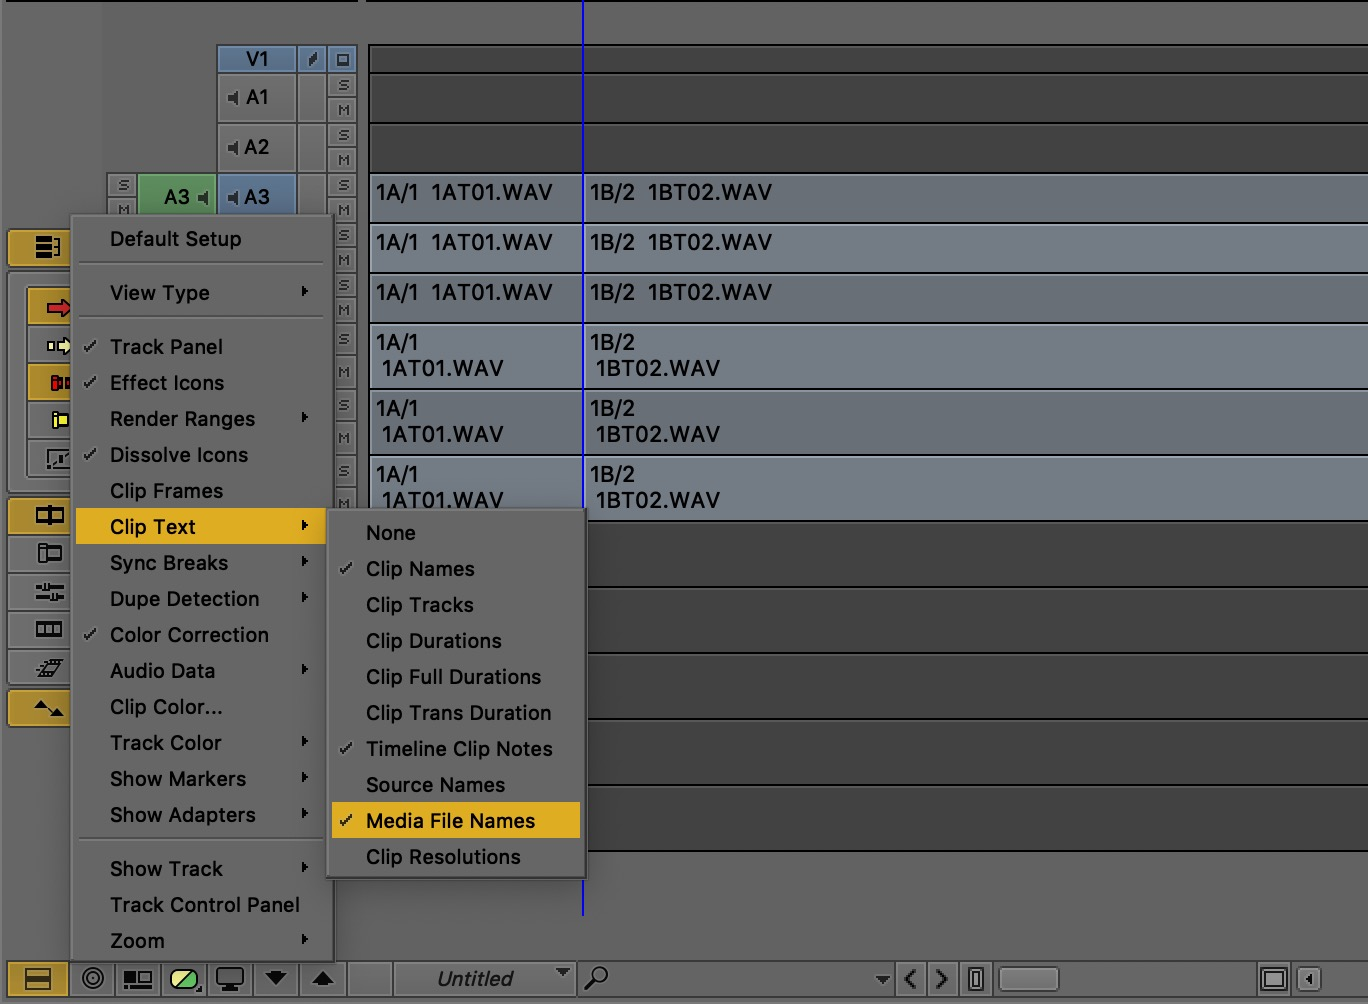 Adobe and Avid need to support iXML metadata for audio channels in the timeline 11